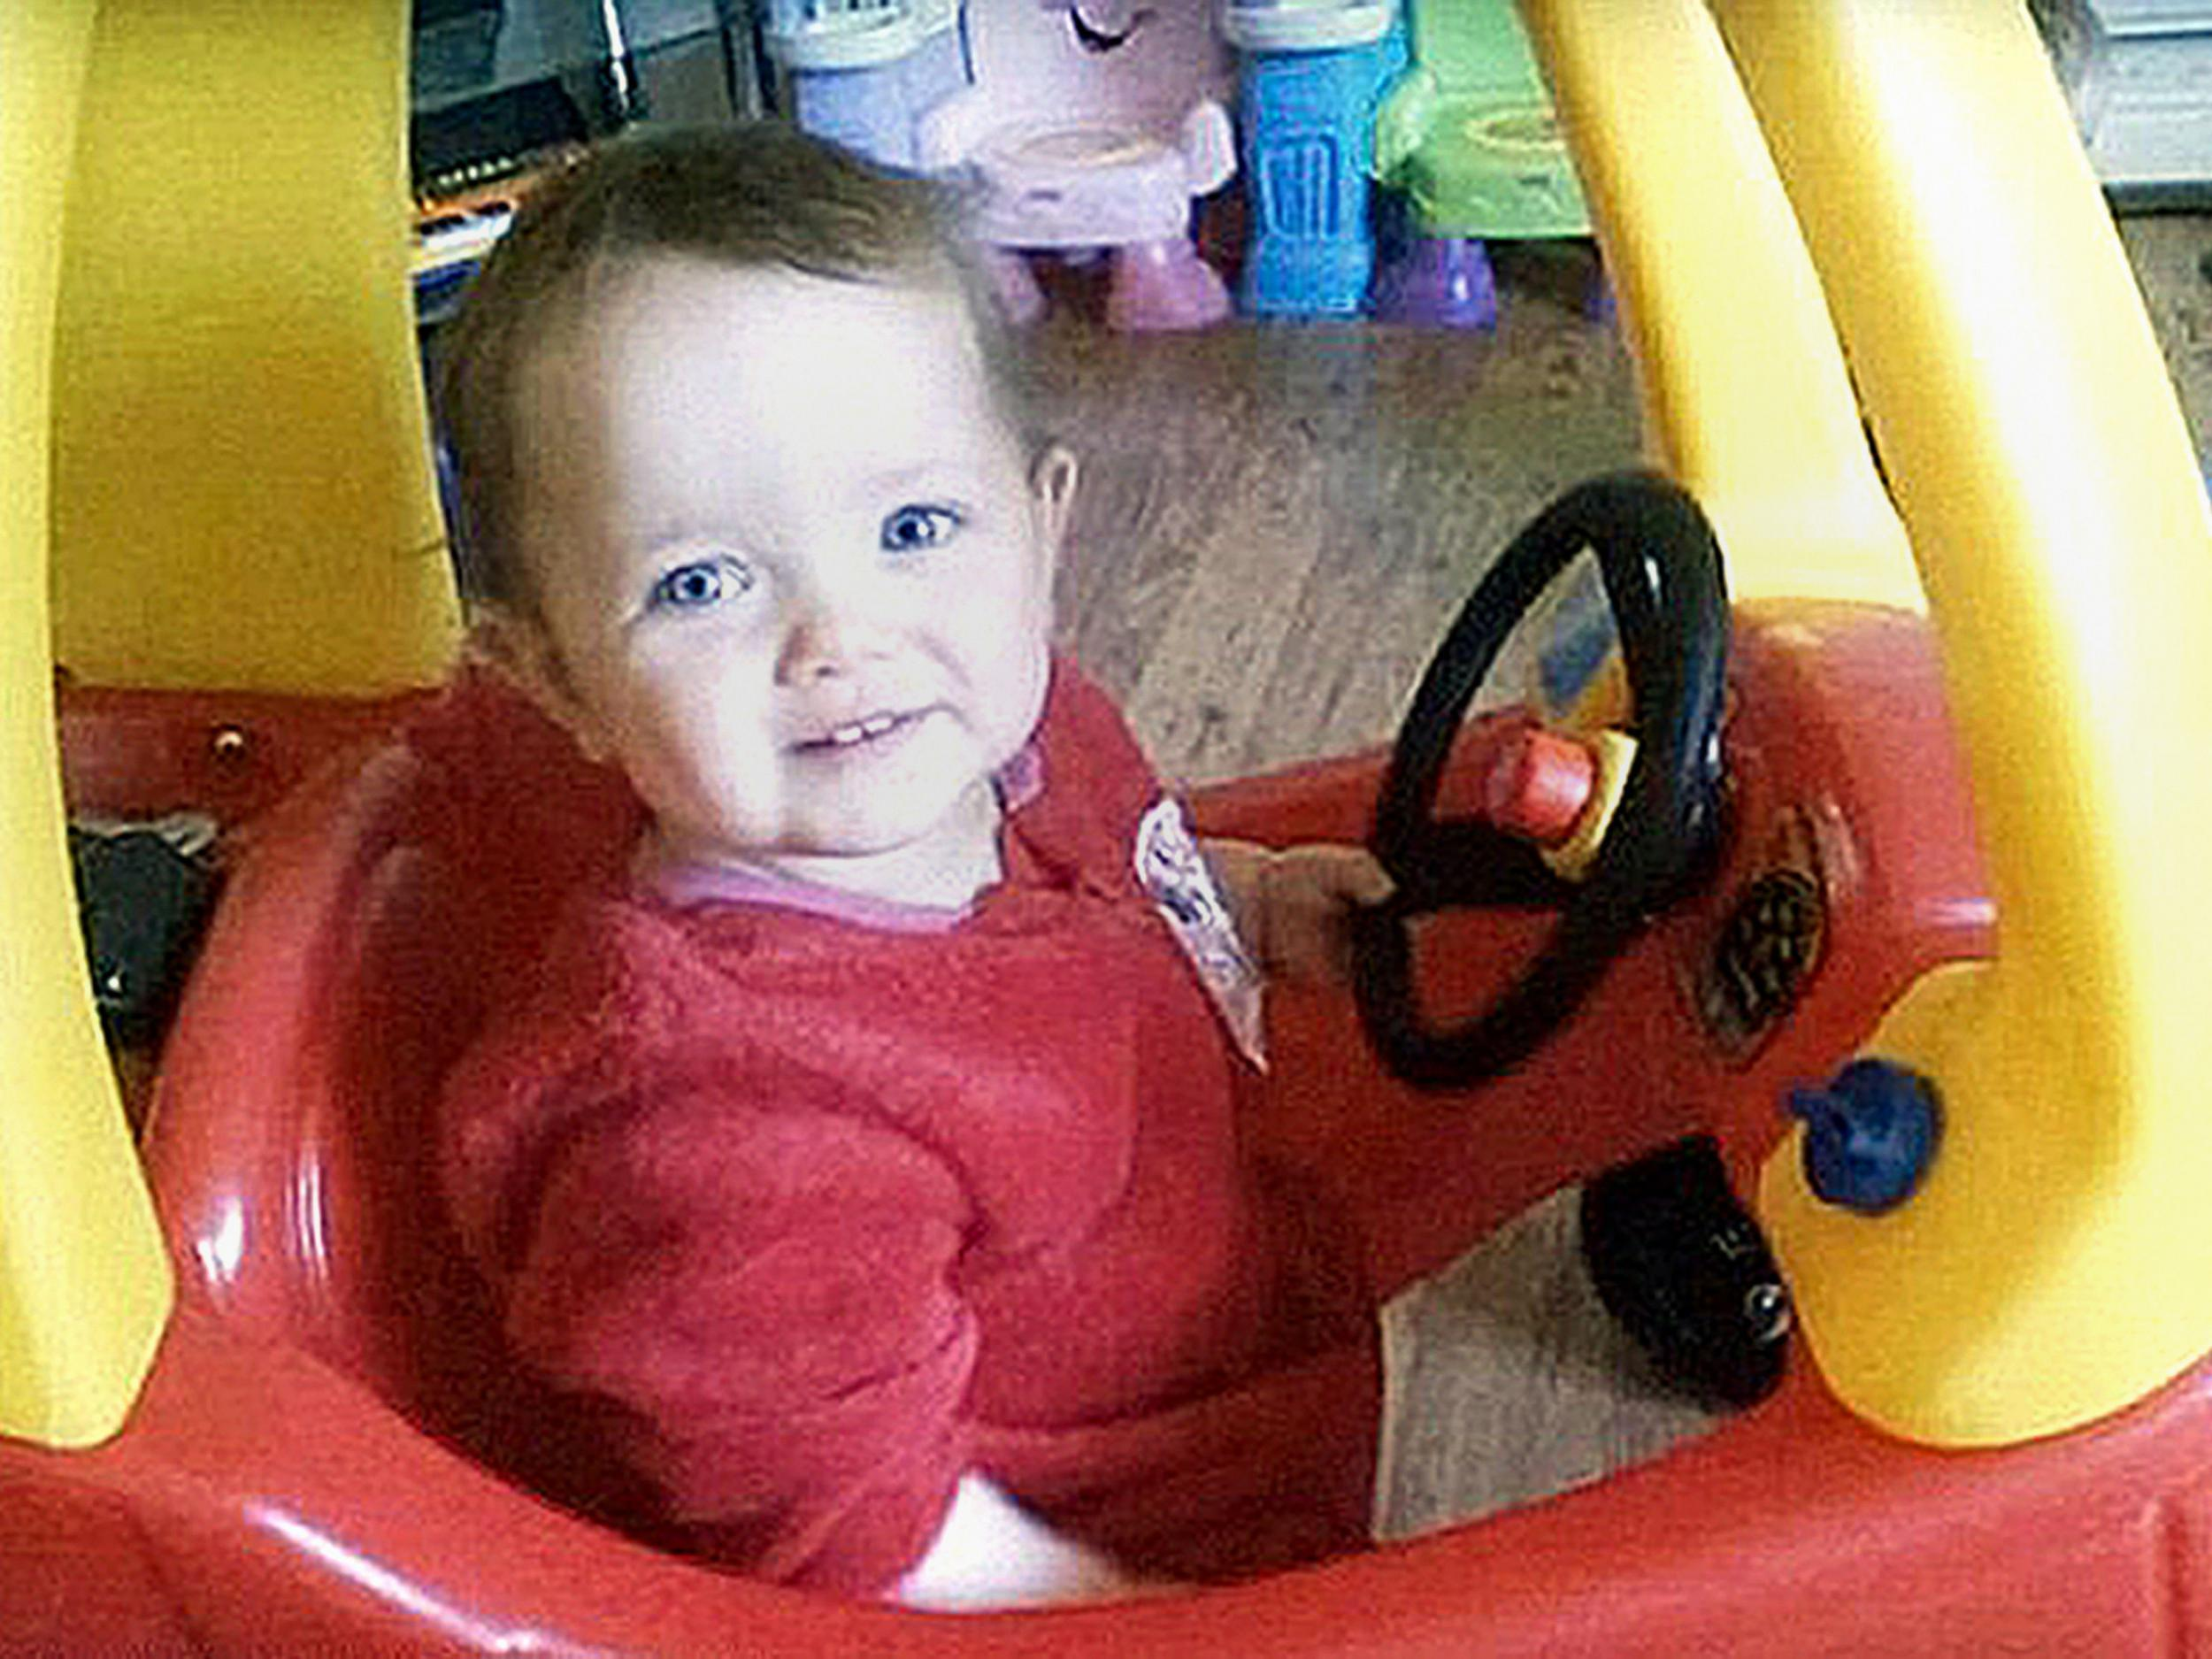 Poppi Worthington 'suffered injuries caused by sexual assault'